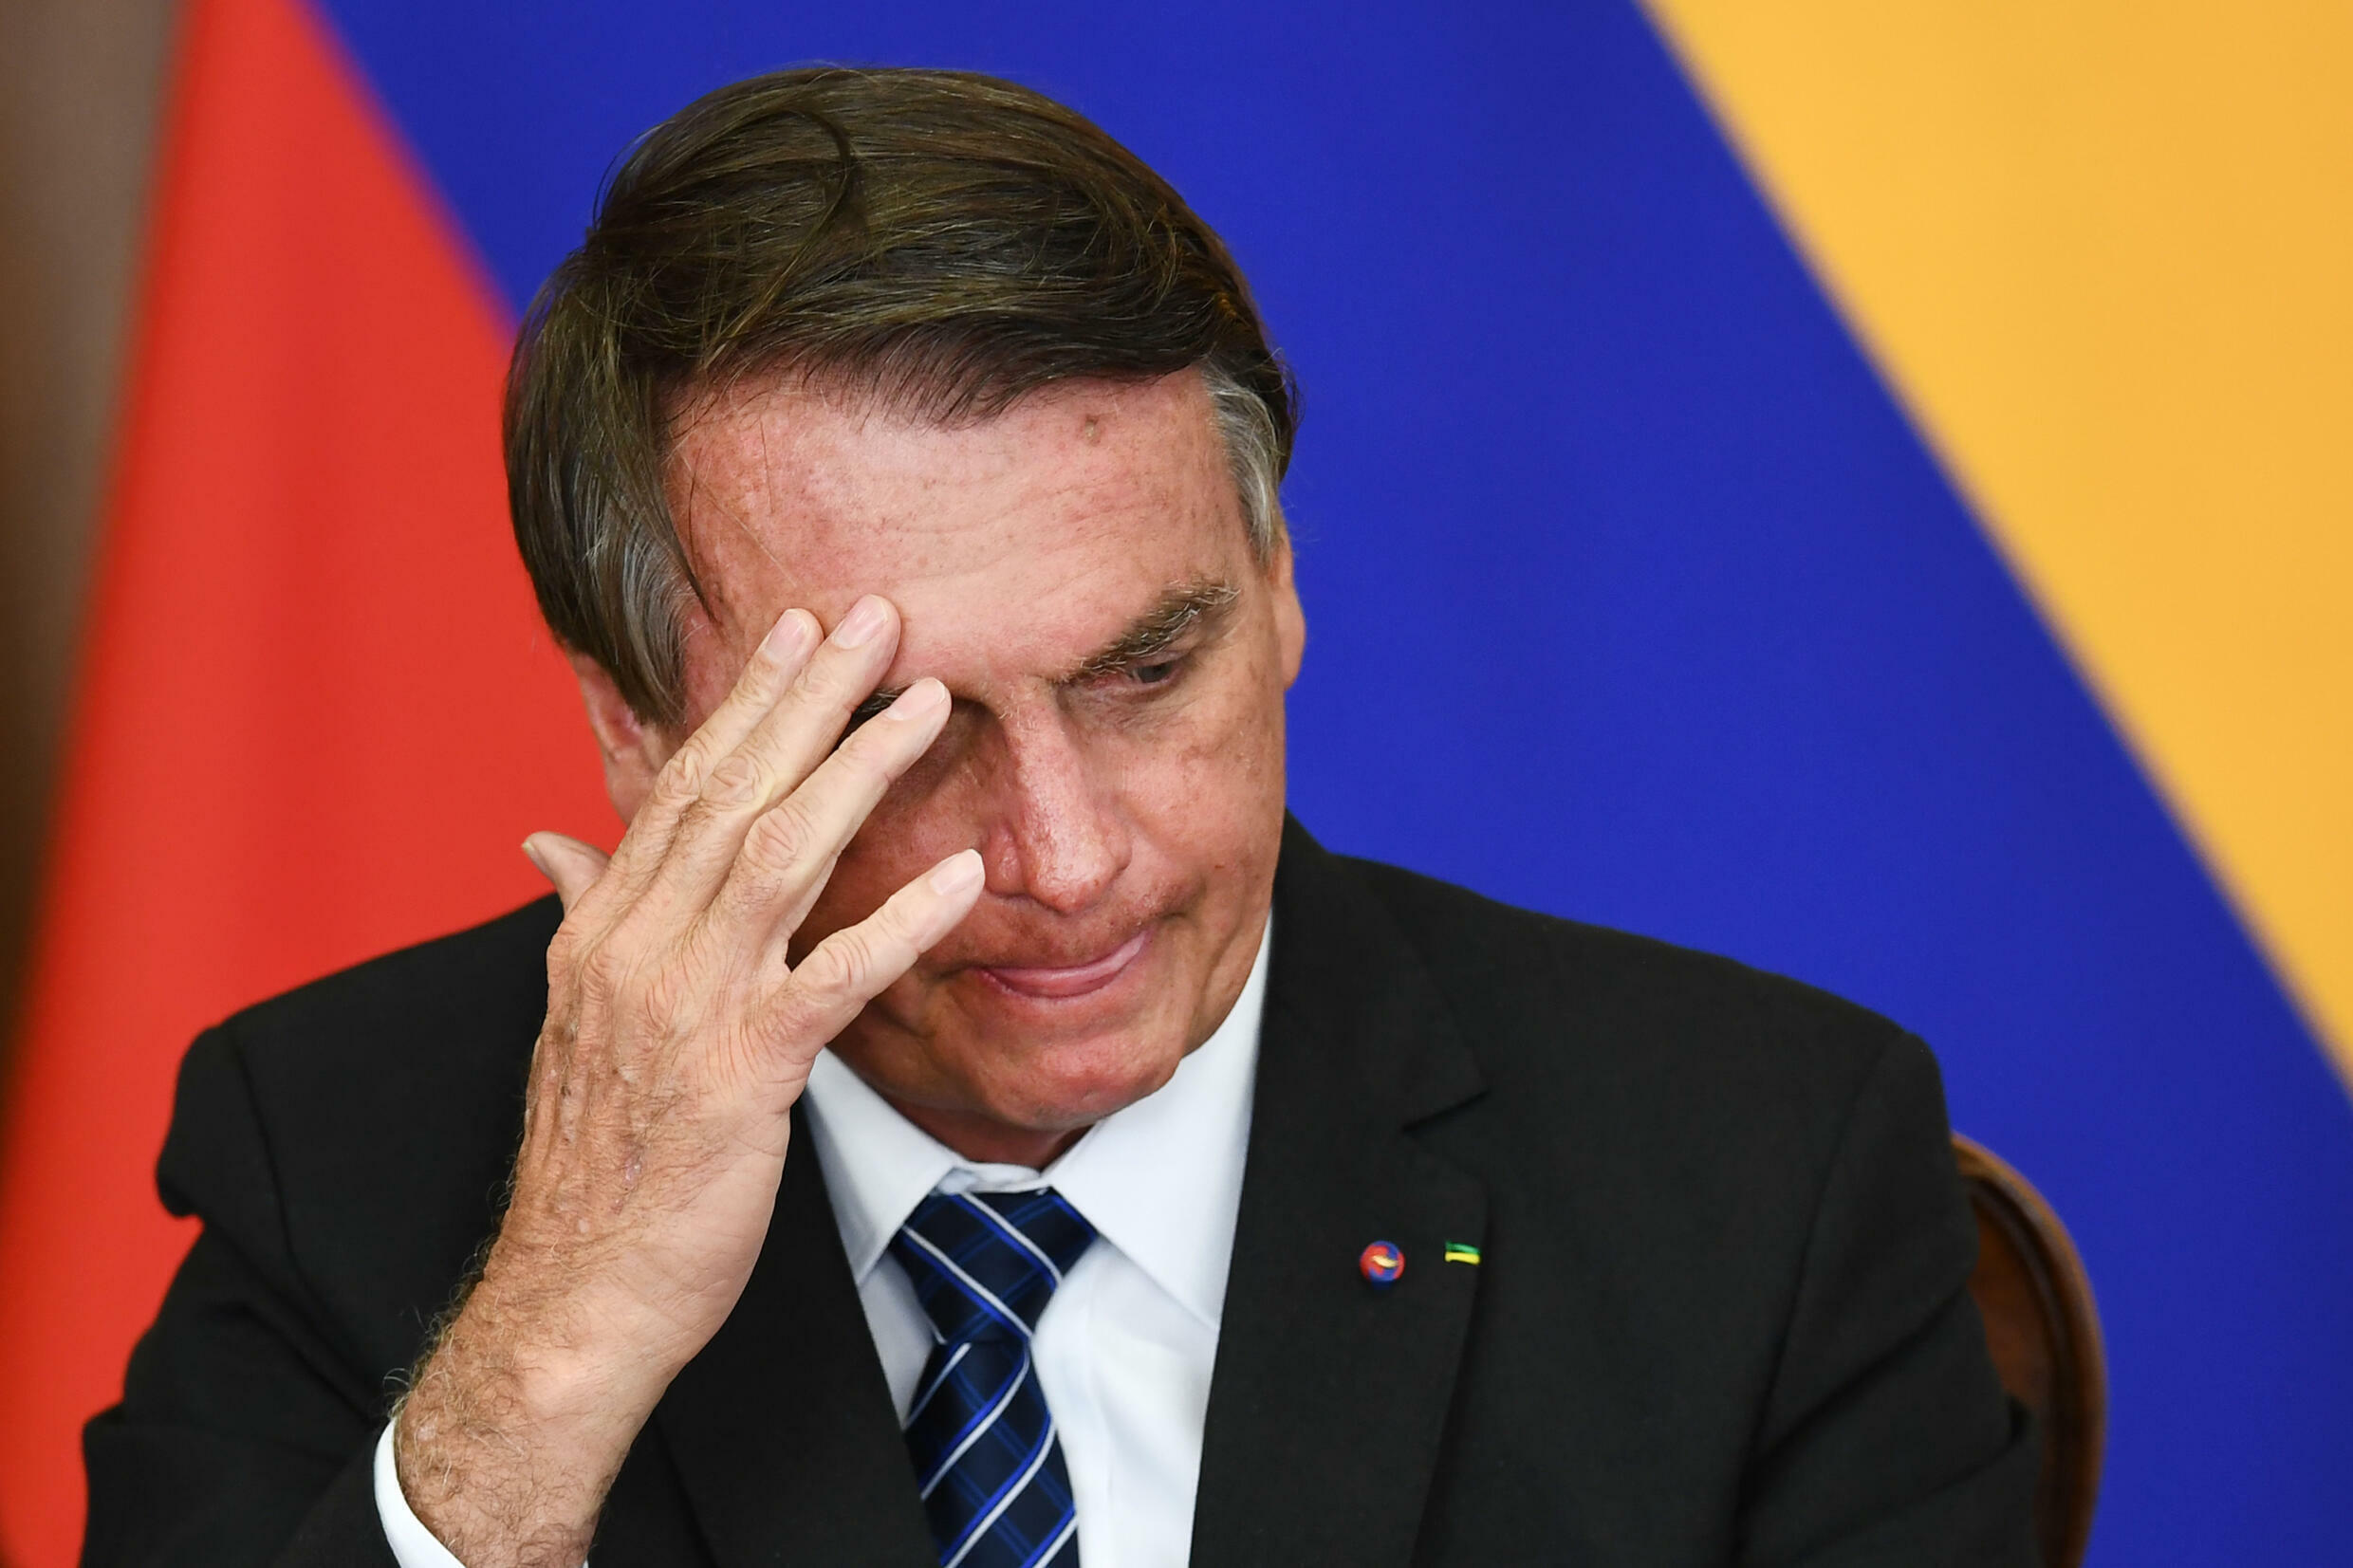 Brazilian President Jair Bolsonaro is accused of multiple crimes by a senate committee over his handling of the Covid-19 pandemic